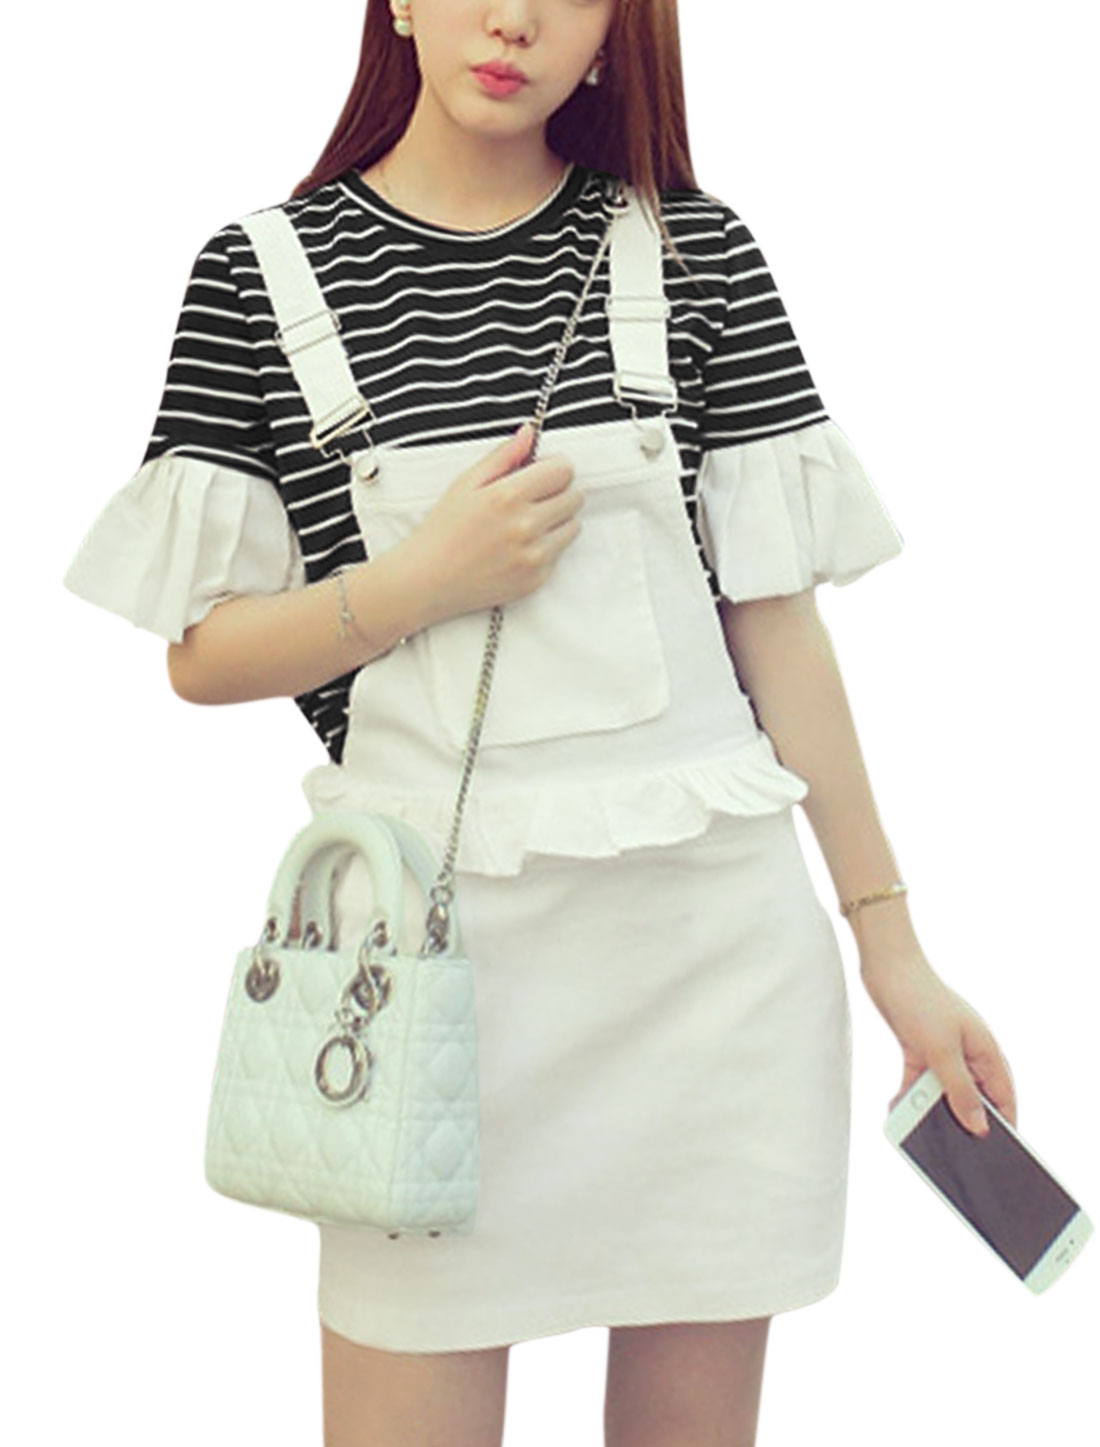 Women Stripes Bell Sleeves Top w Flounce Suspender Skirt Set White Black XS